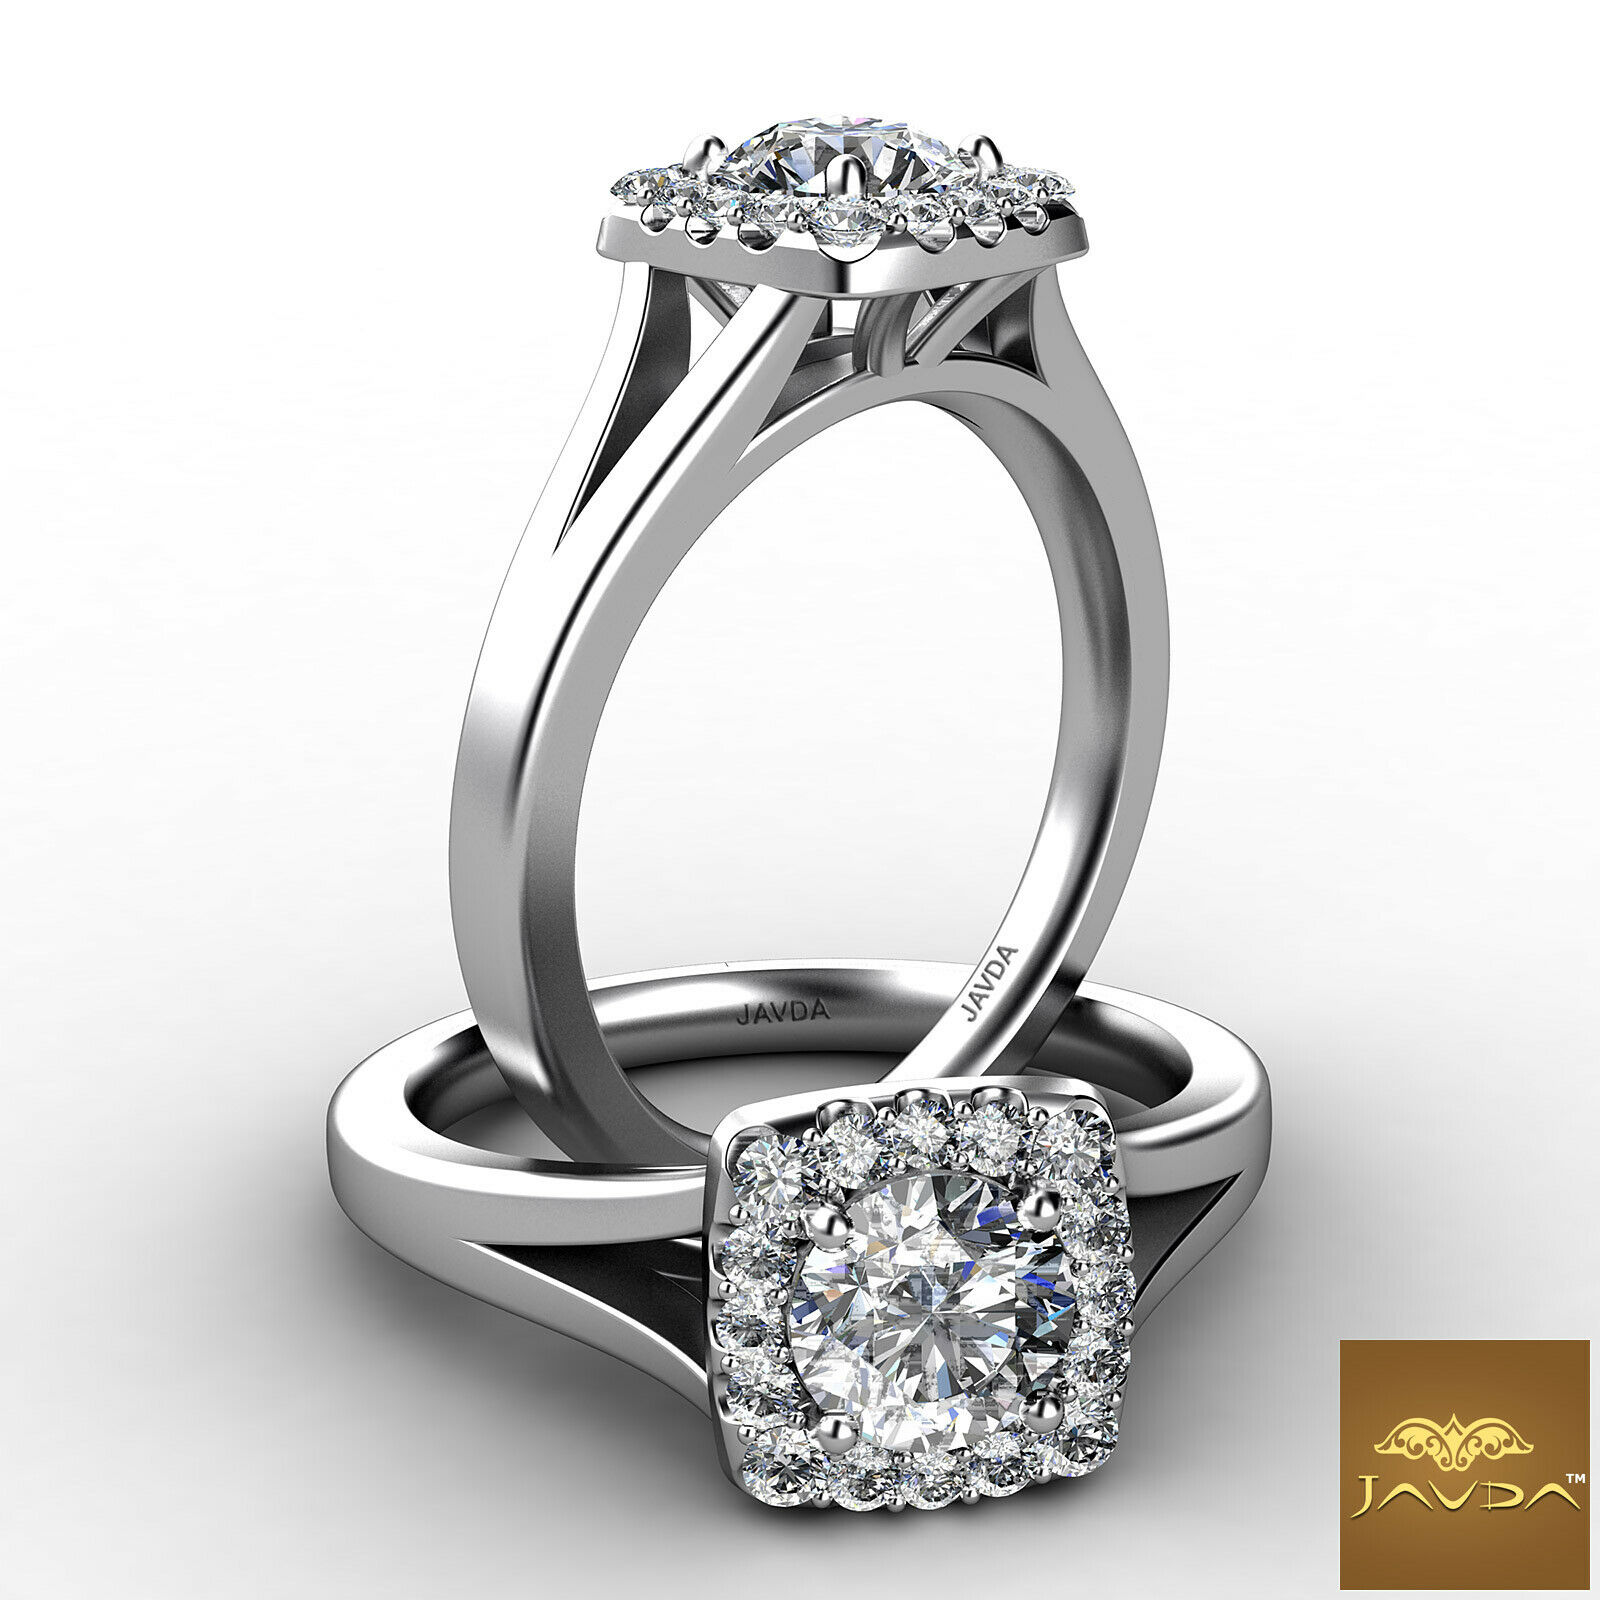 0.9ctw Halo Split Shank Cathedral Round Diamond Engagement Ring GIA H-VS2 W Gold